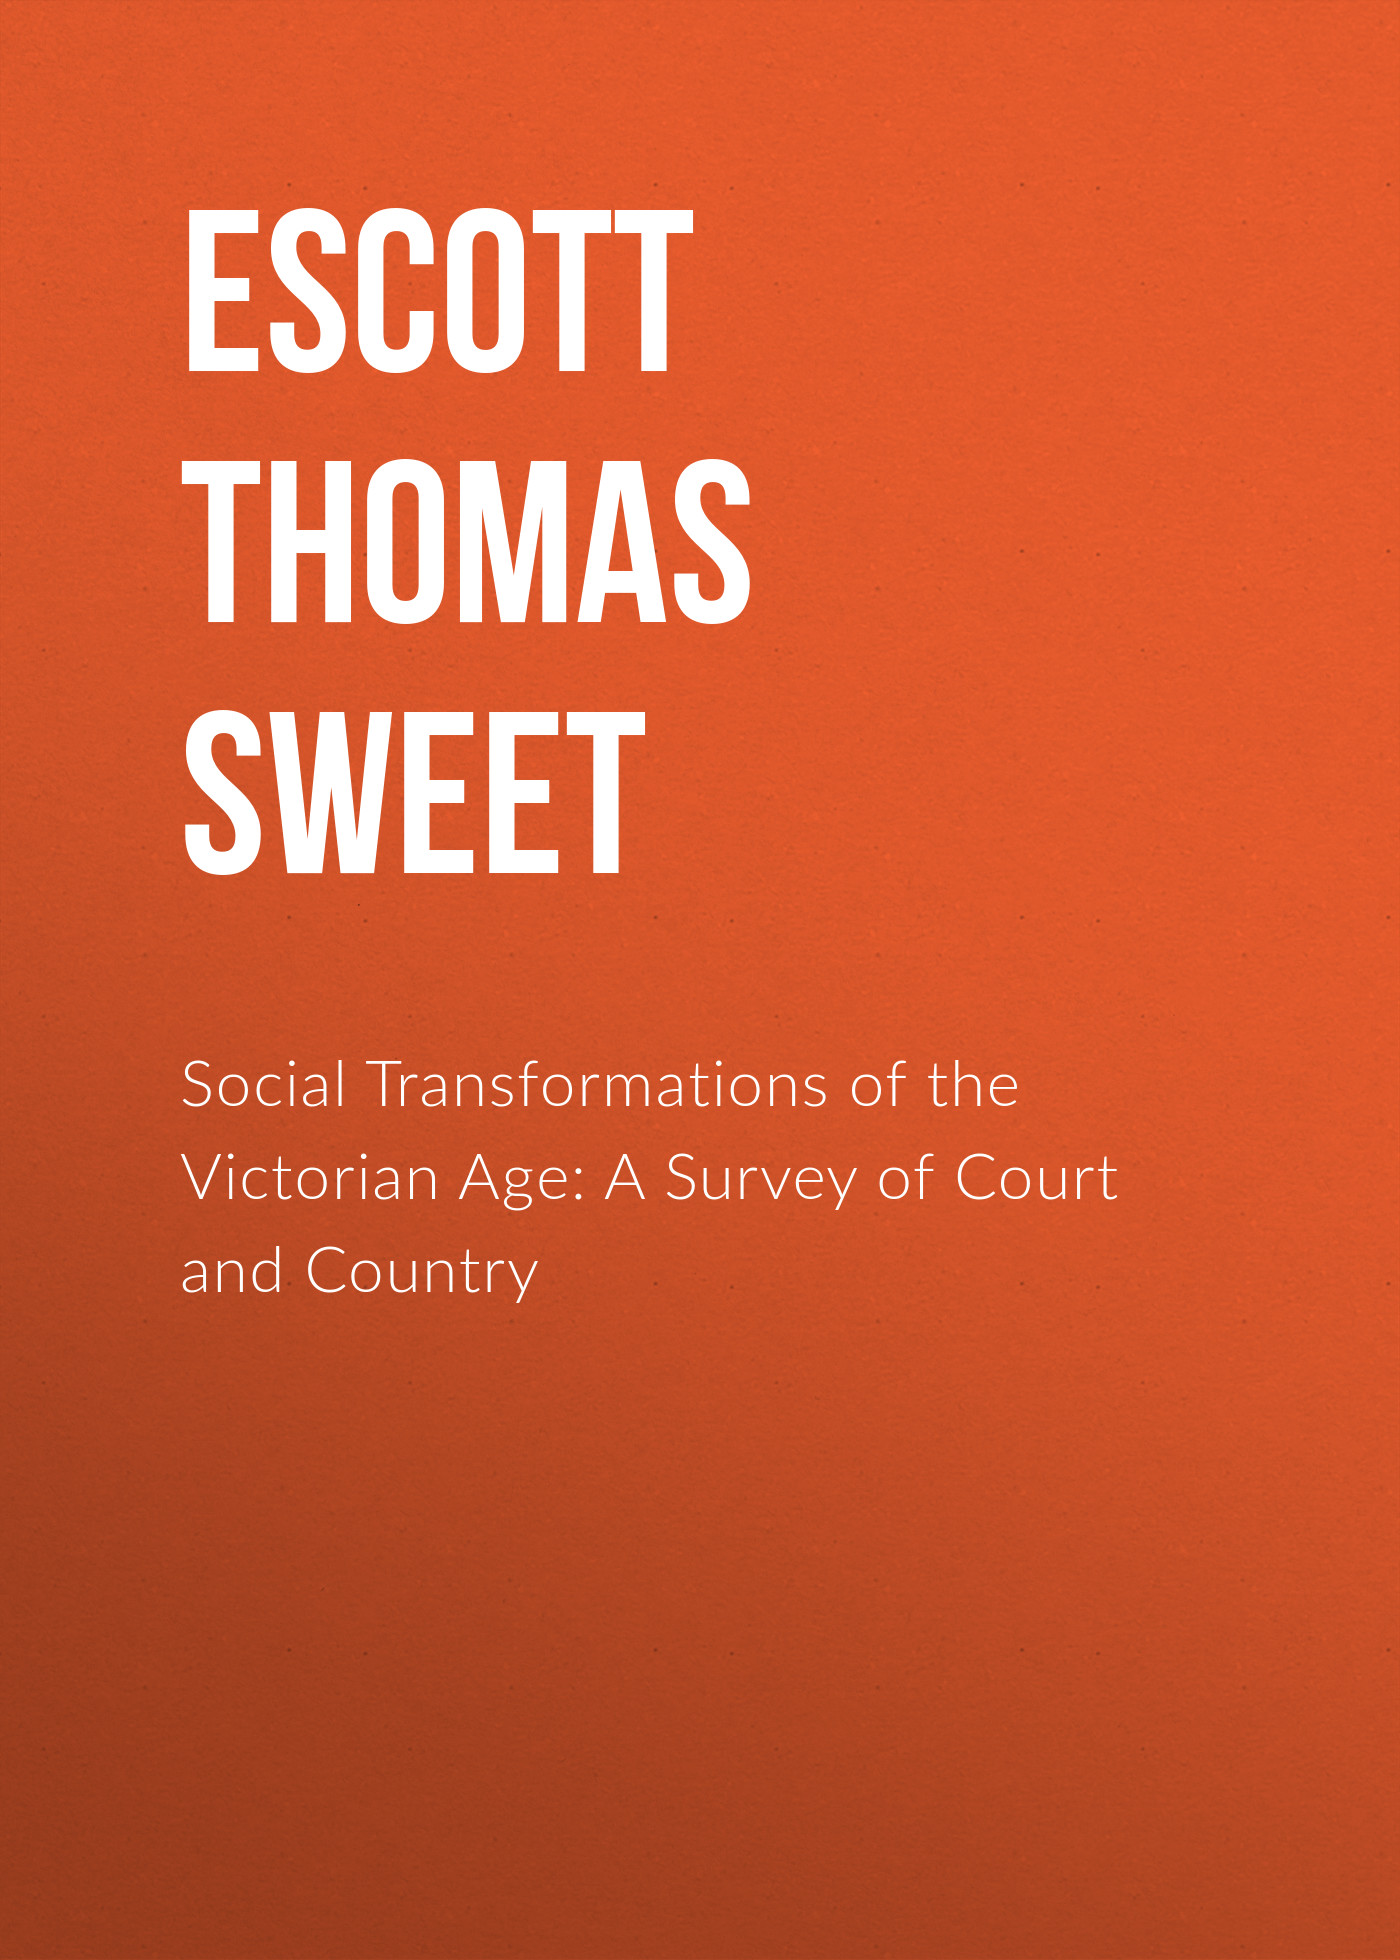 Escott Thomas Hay Sweet Social Transformations of the Victorian Age: A Survey of Court and Country common rail injector fuel diesel engine 0445120134 diesel injection nozzle assembly 0 445 120 134 and auto engine